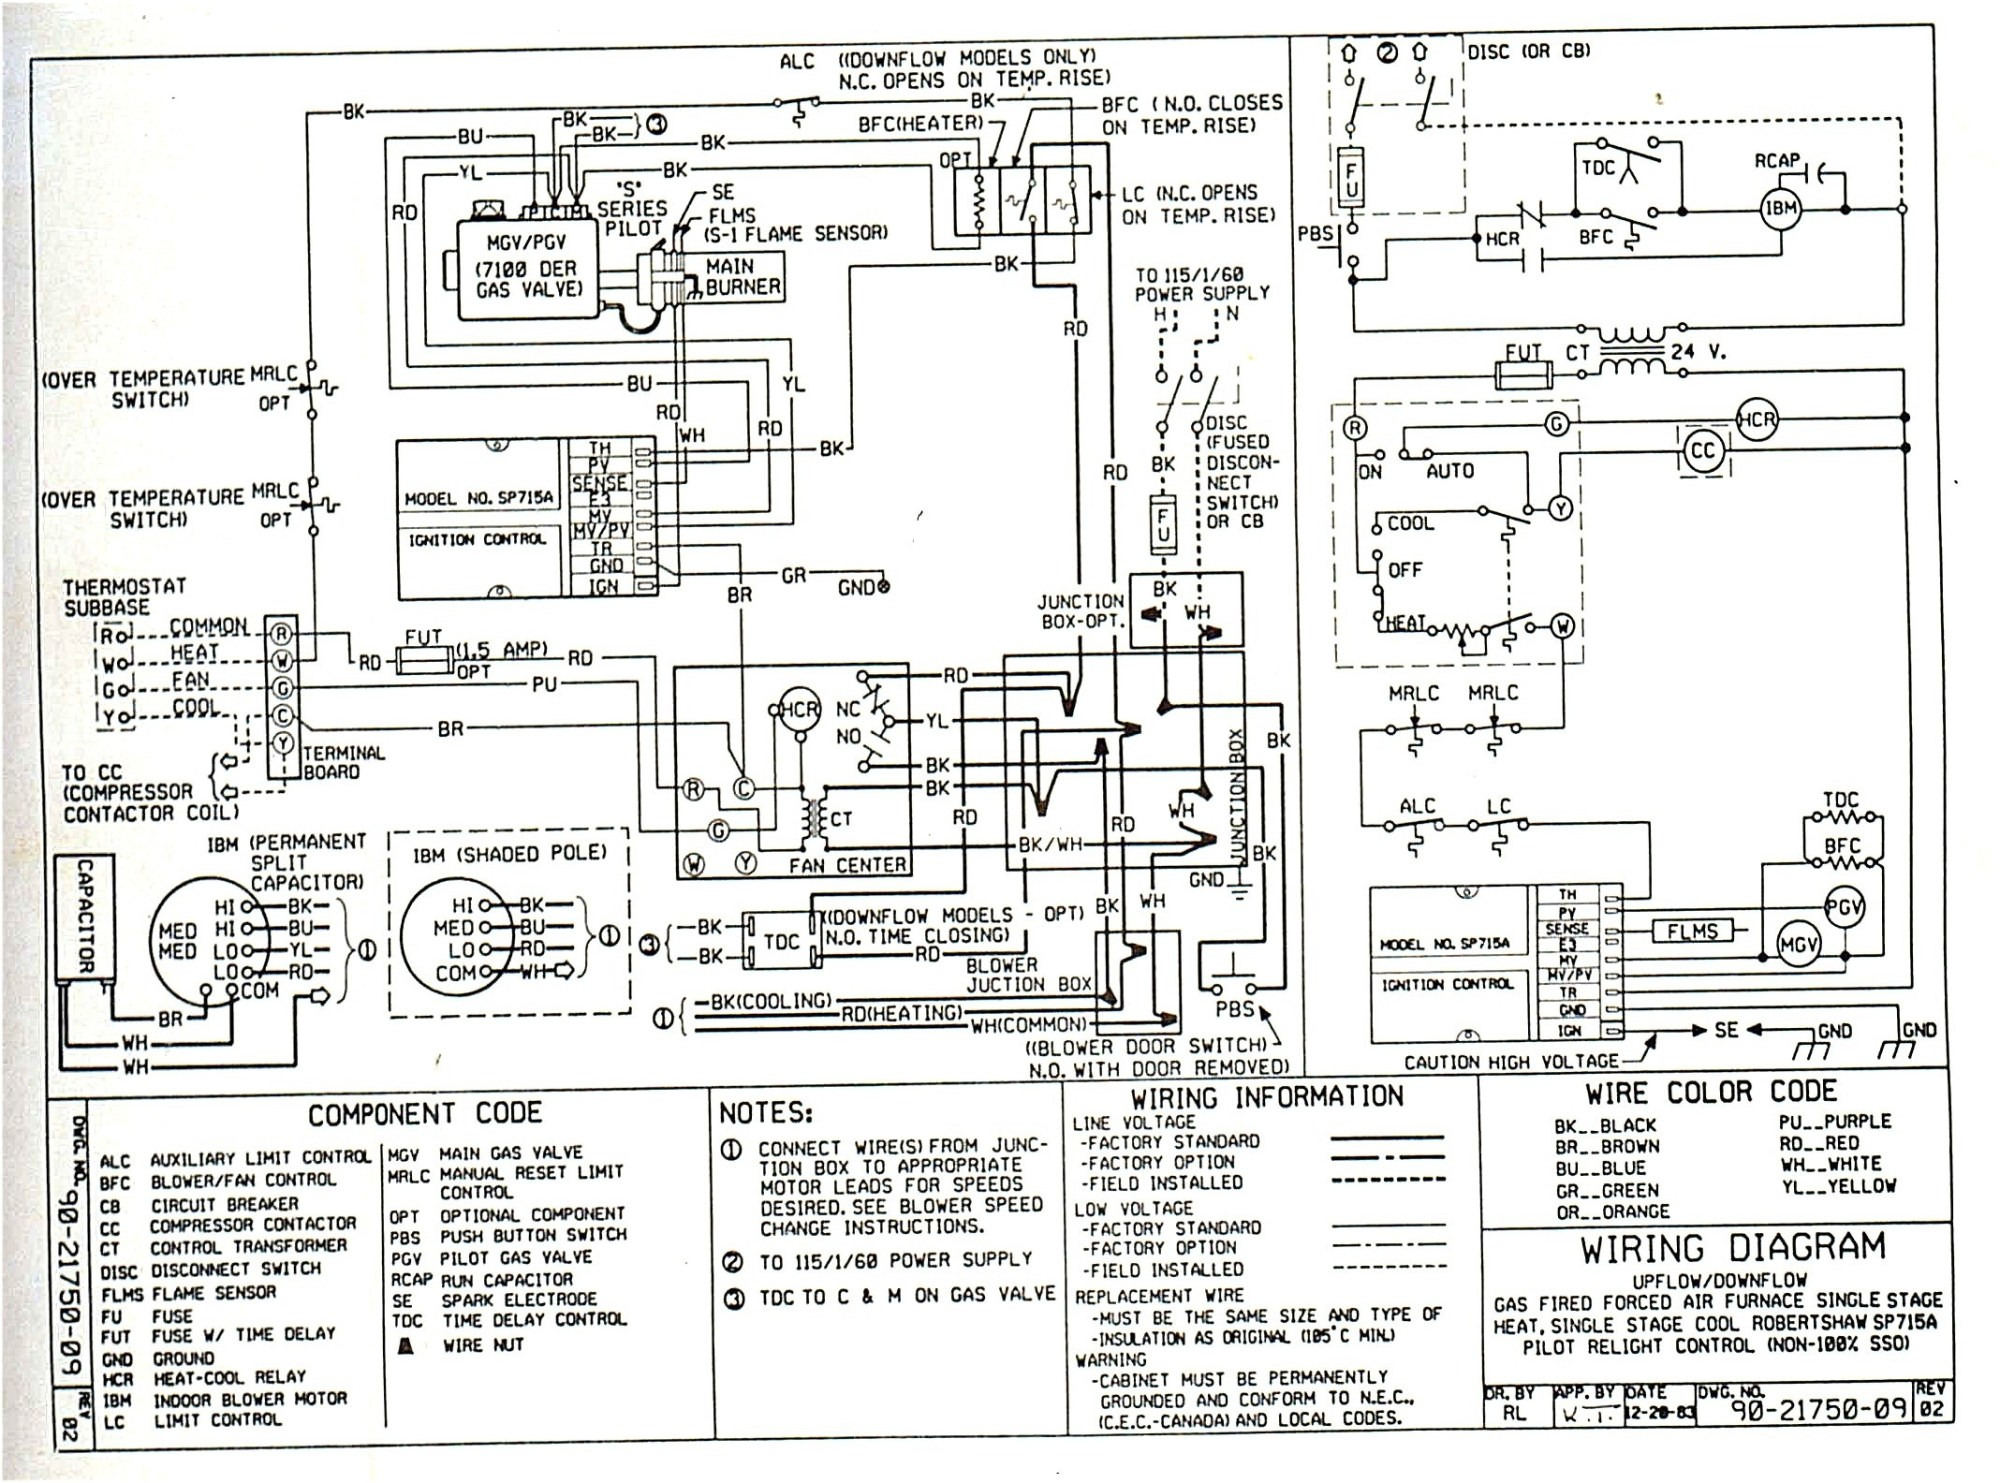 hight resolution of electronic ignition furnace wiring diagram wiring diagram viewfriedrich gas furnace wiring use wiring diagram electronic ignition